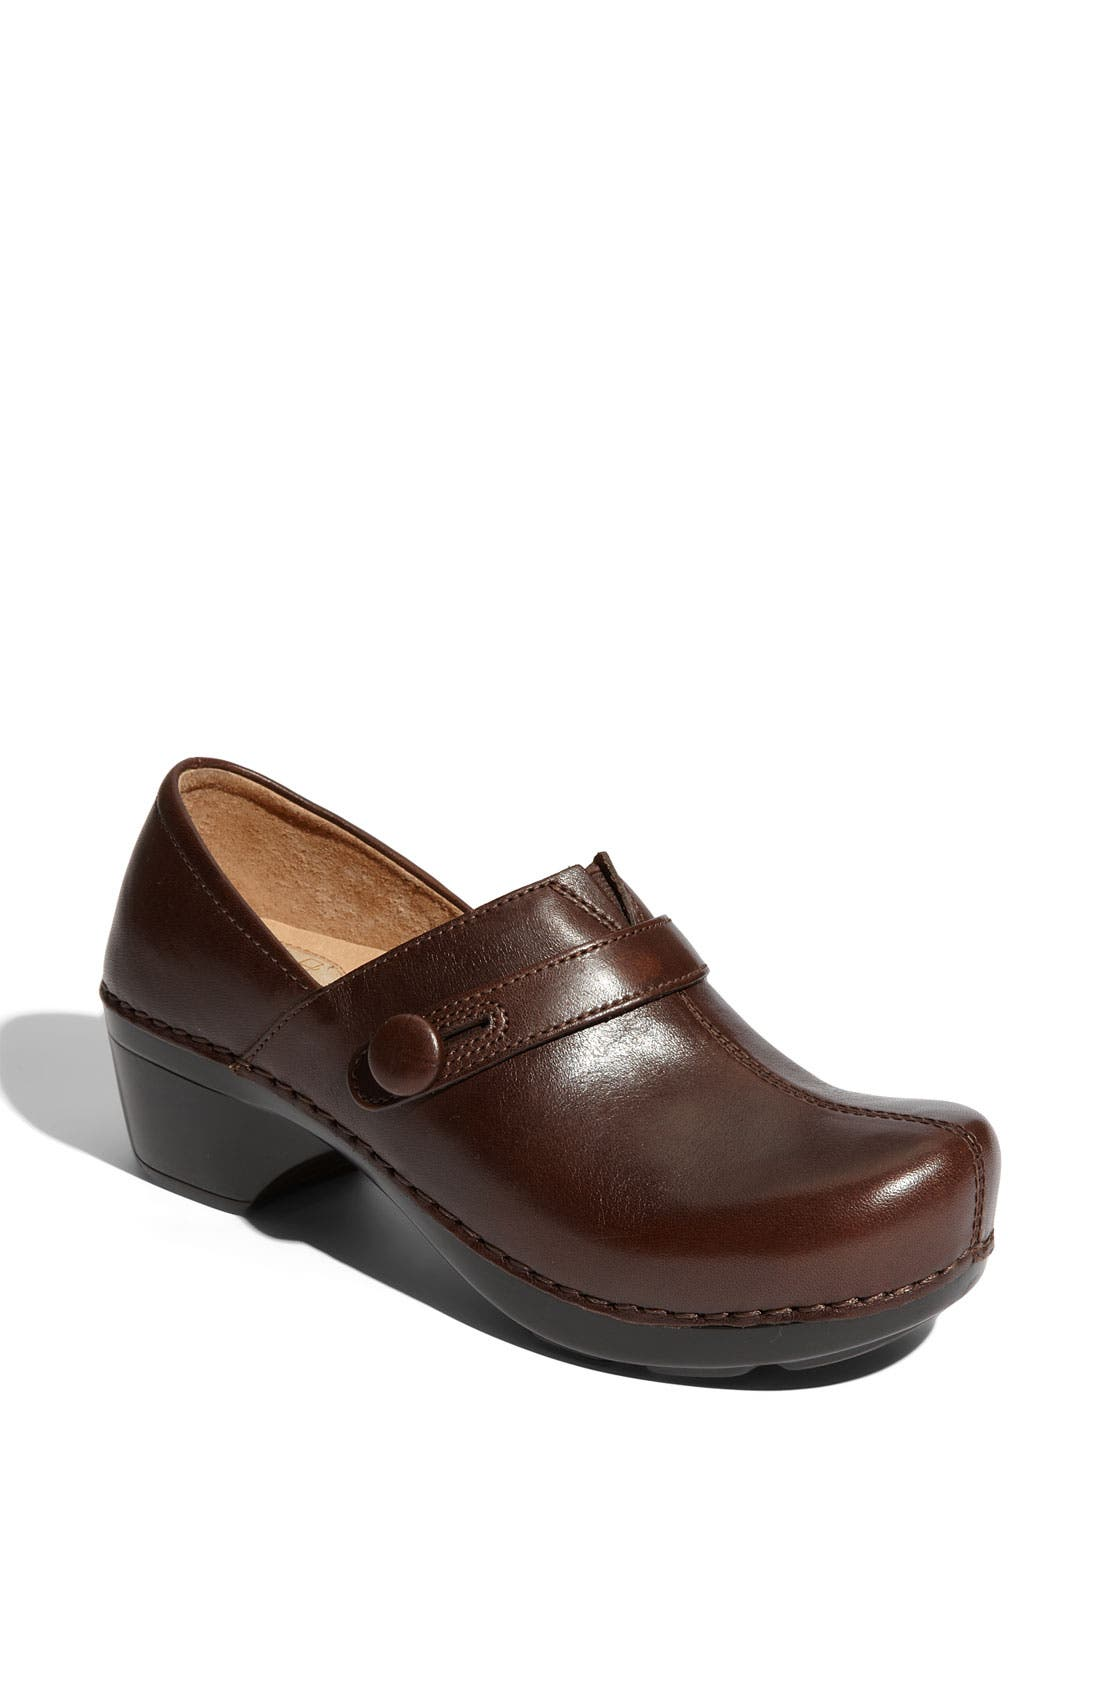 Alternate Image 1 Selected - Dansko 'Solstice' Clog